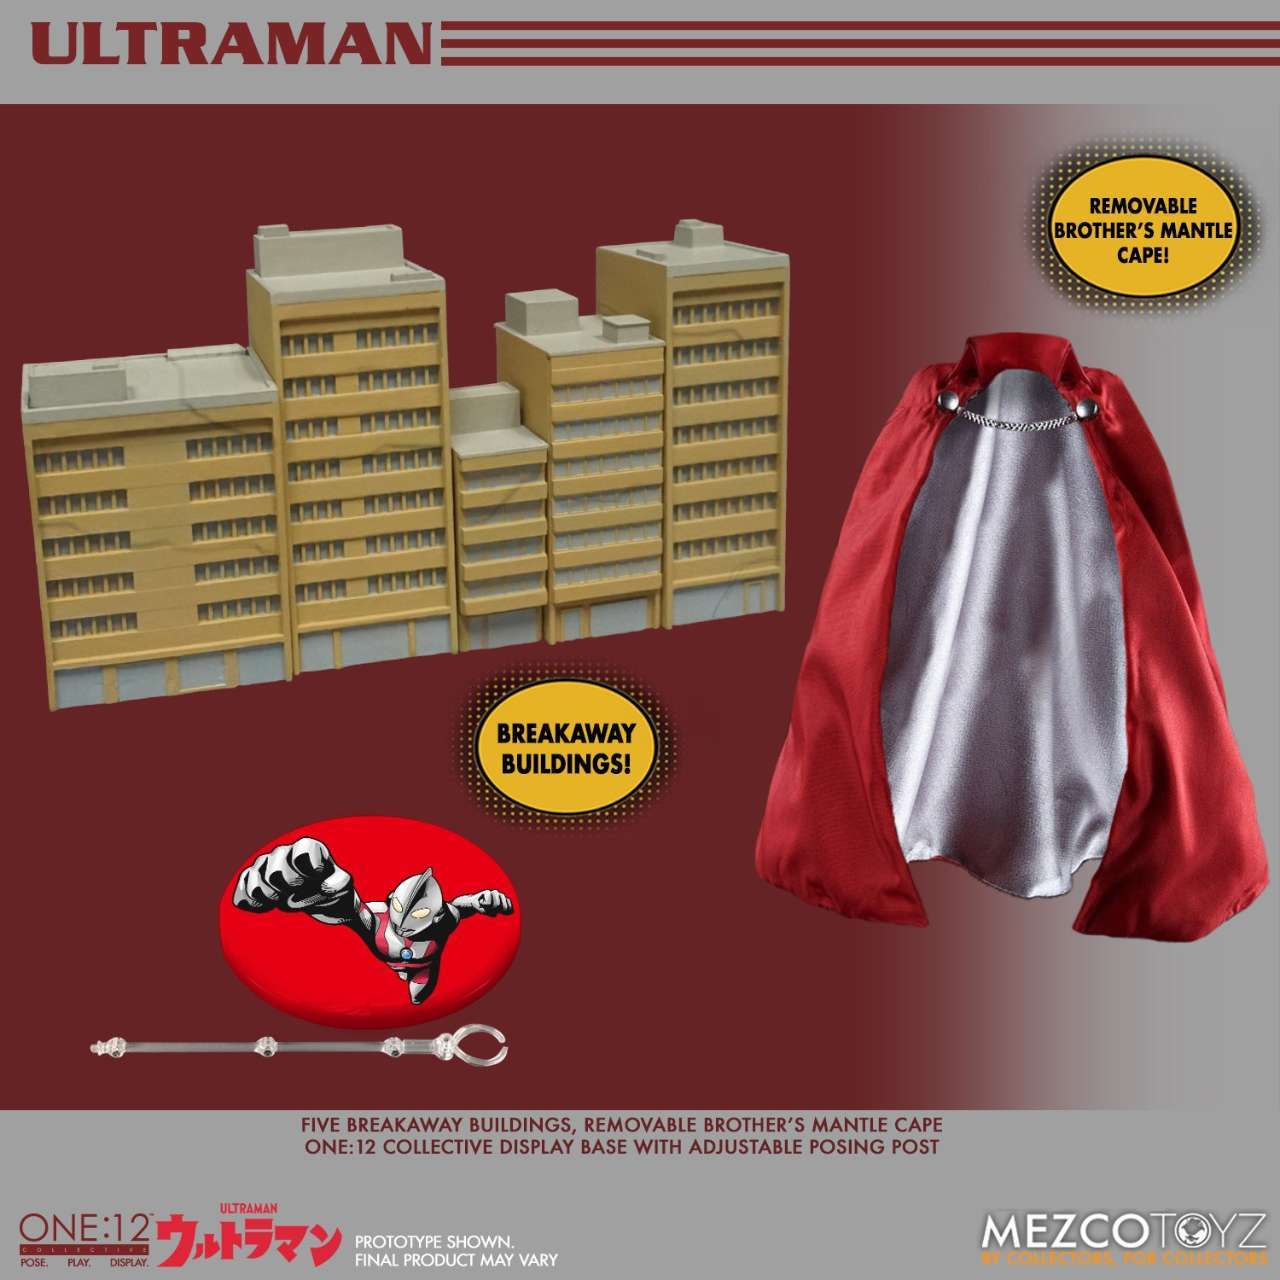 ultraman-one12-2